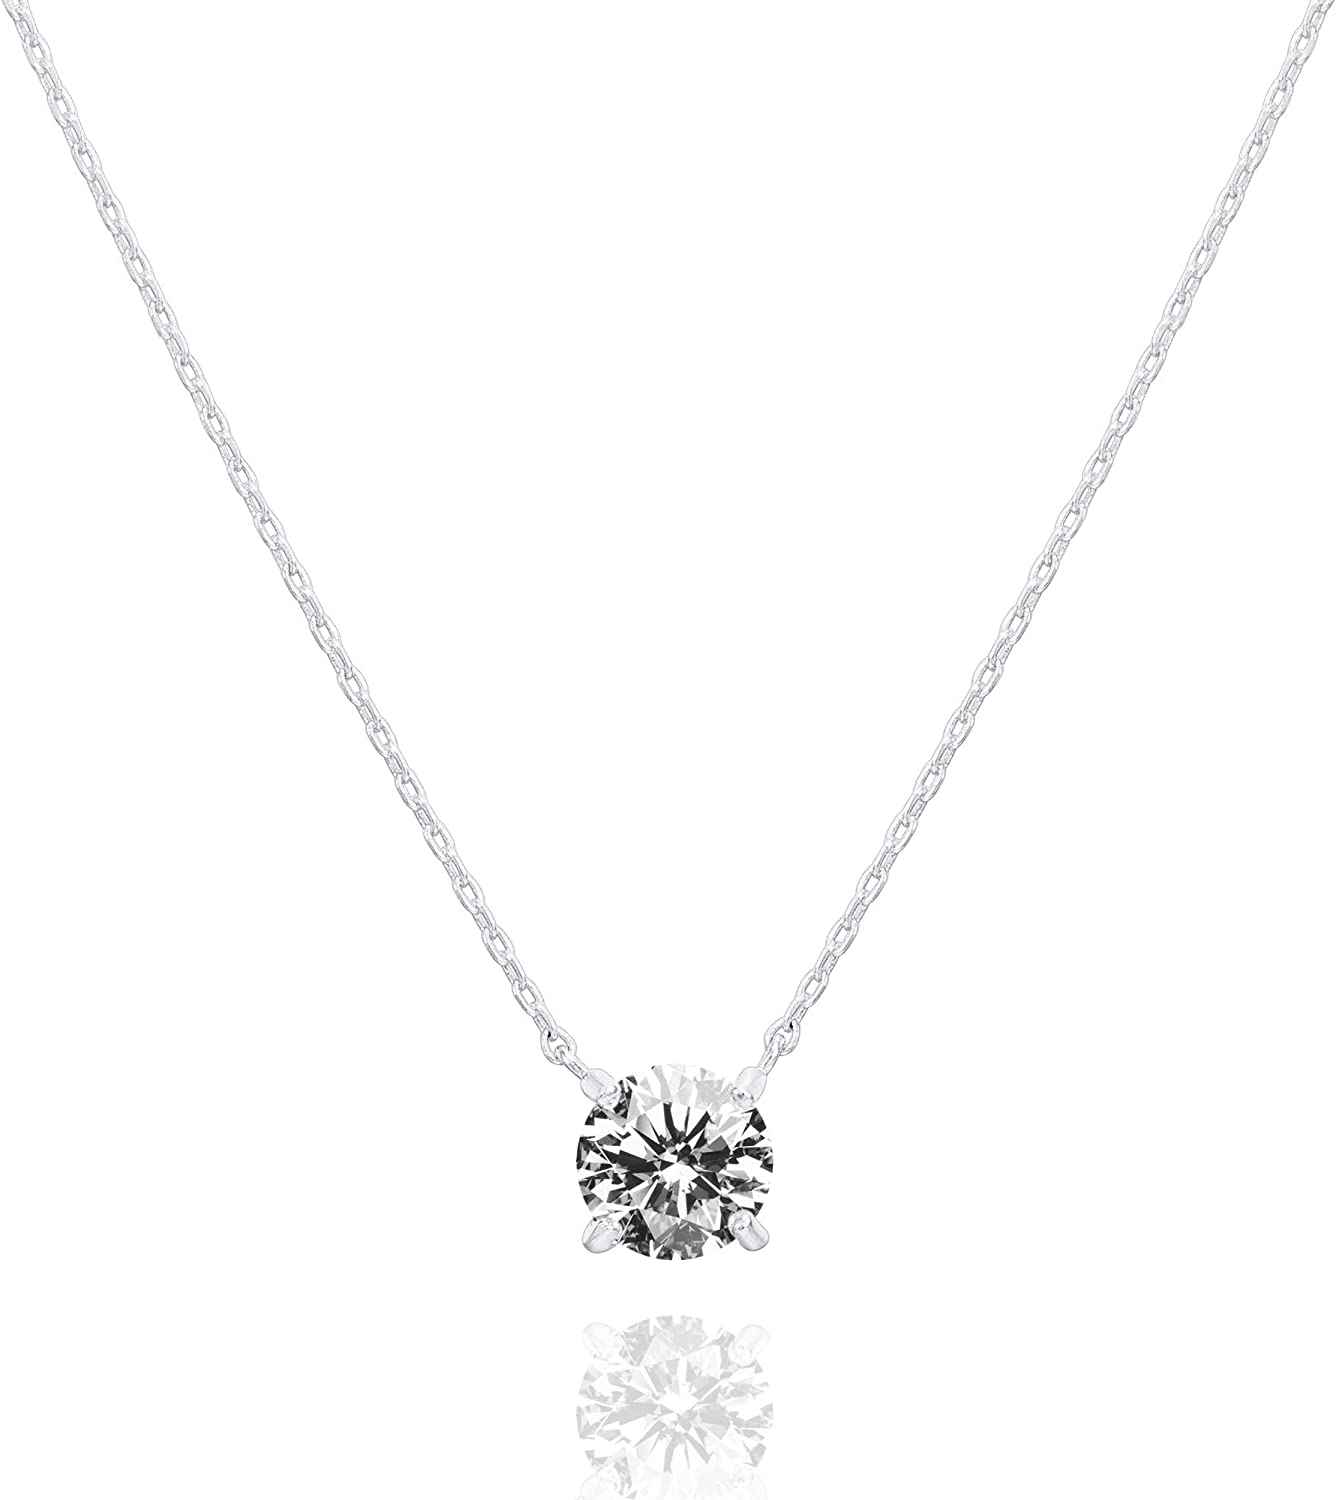 PAVOI 14K Gold Plated Swarovski Crystal Solitaire 1.5 Carat (7.3mm) CZ Dainty Choker Necklace   Gold Necklaces for Women